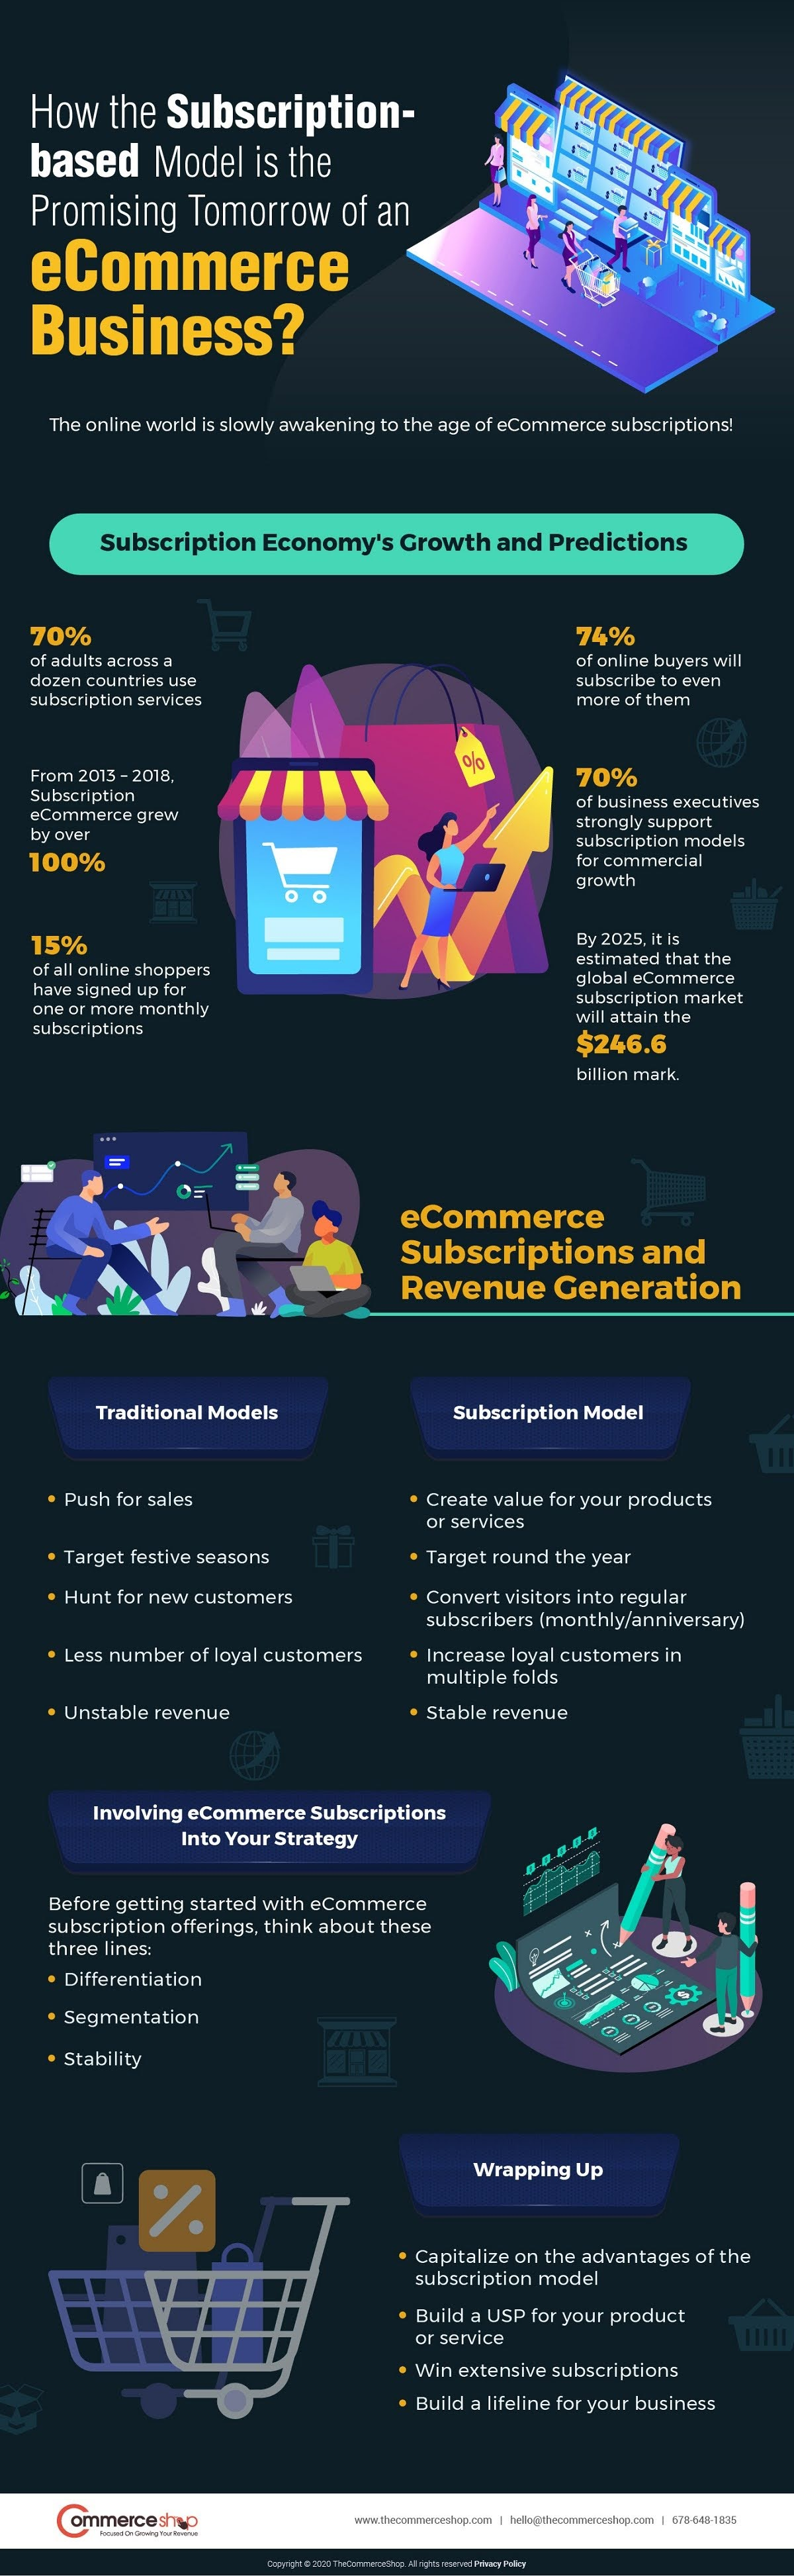 how-the-subscription-based-model-is-the-promising-tomorrow-of-an-ecommerce-business-infographic